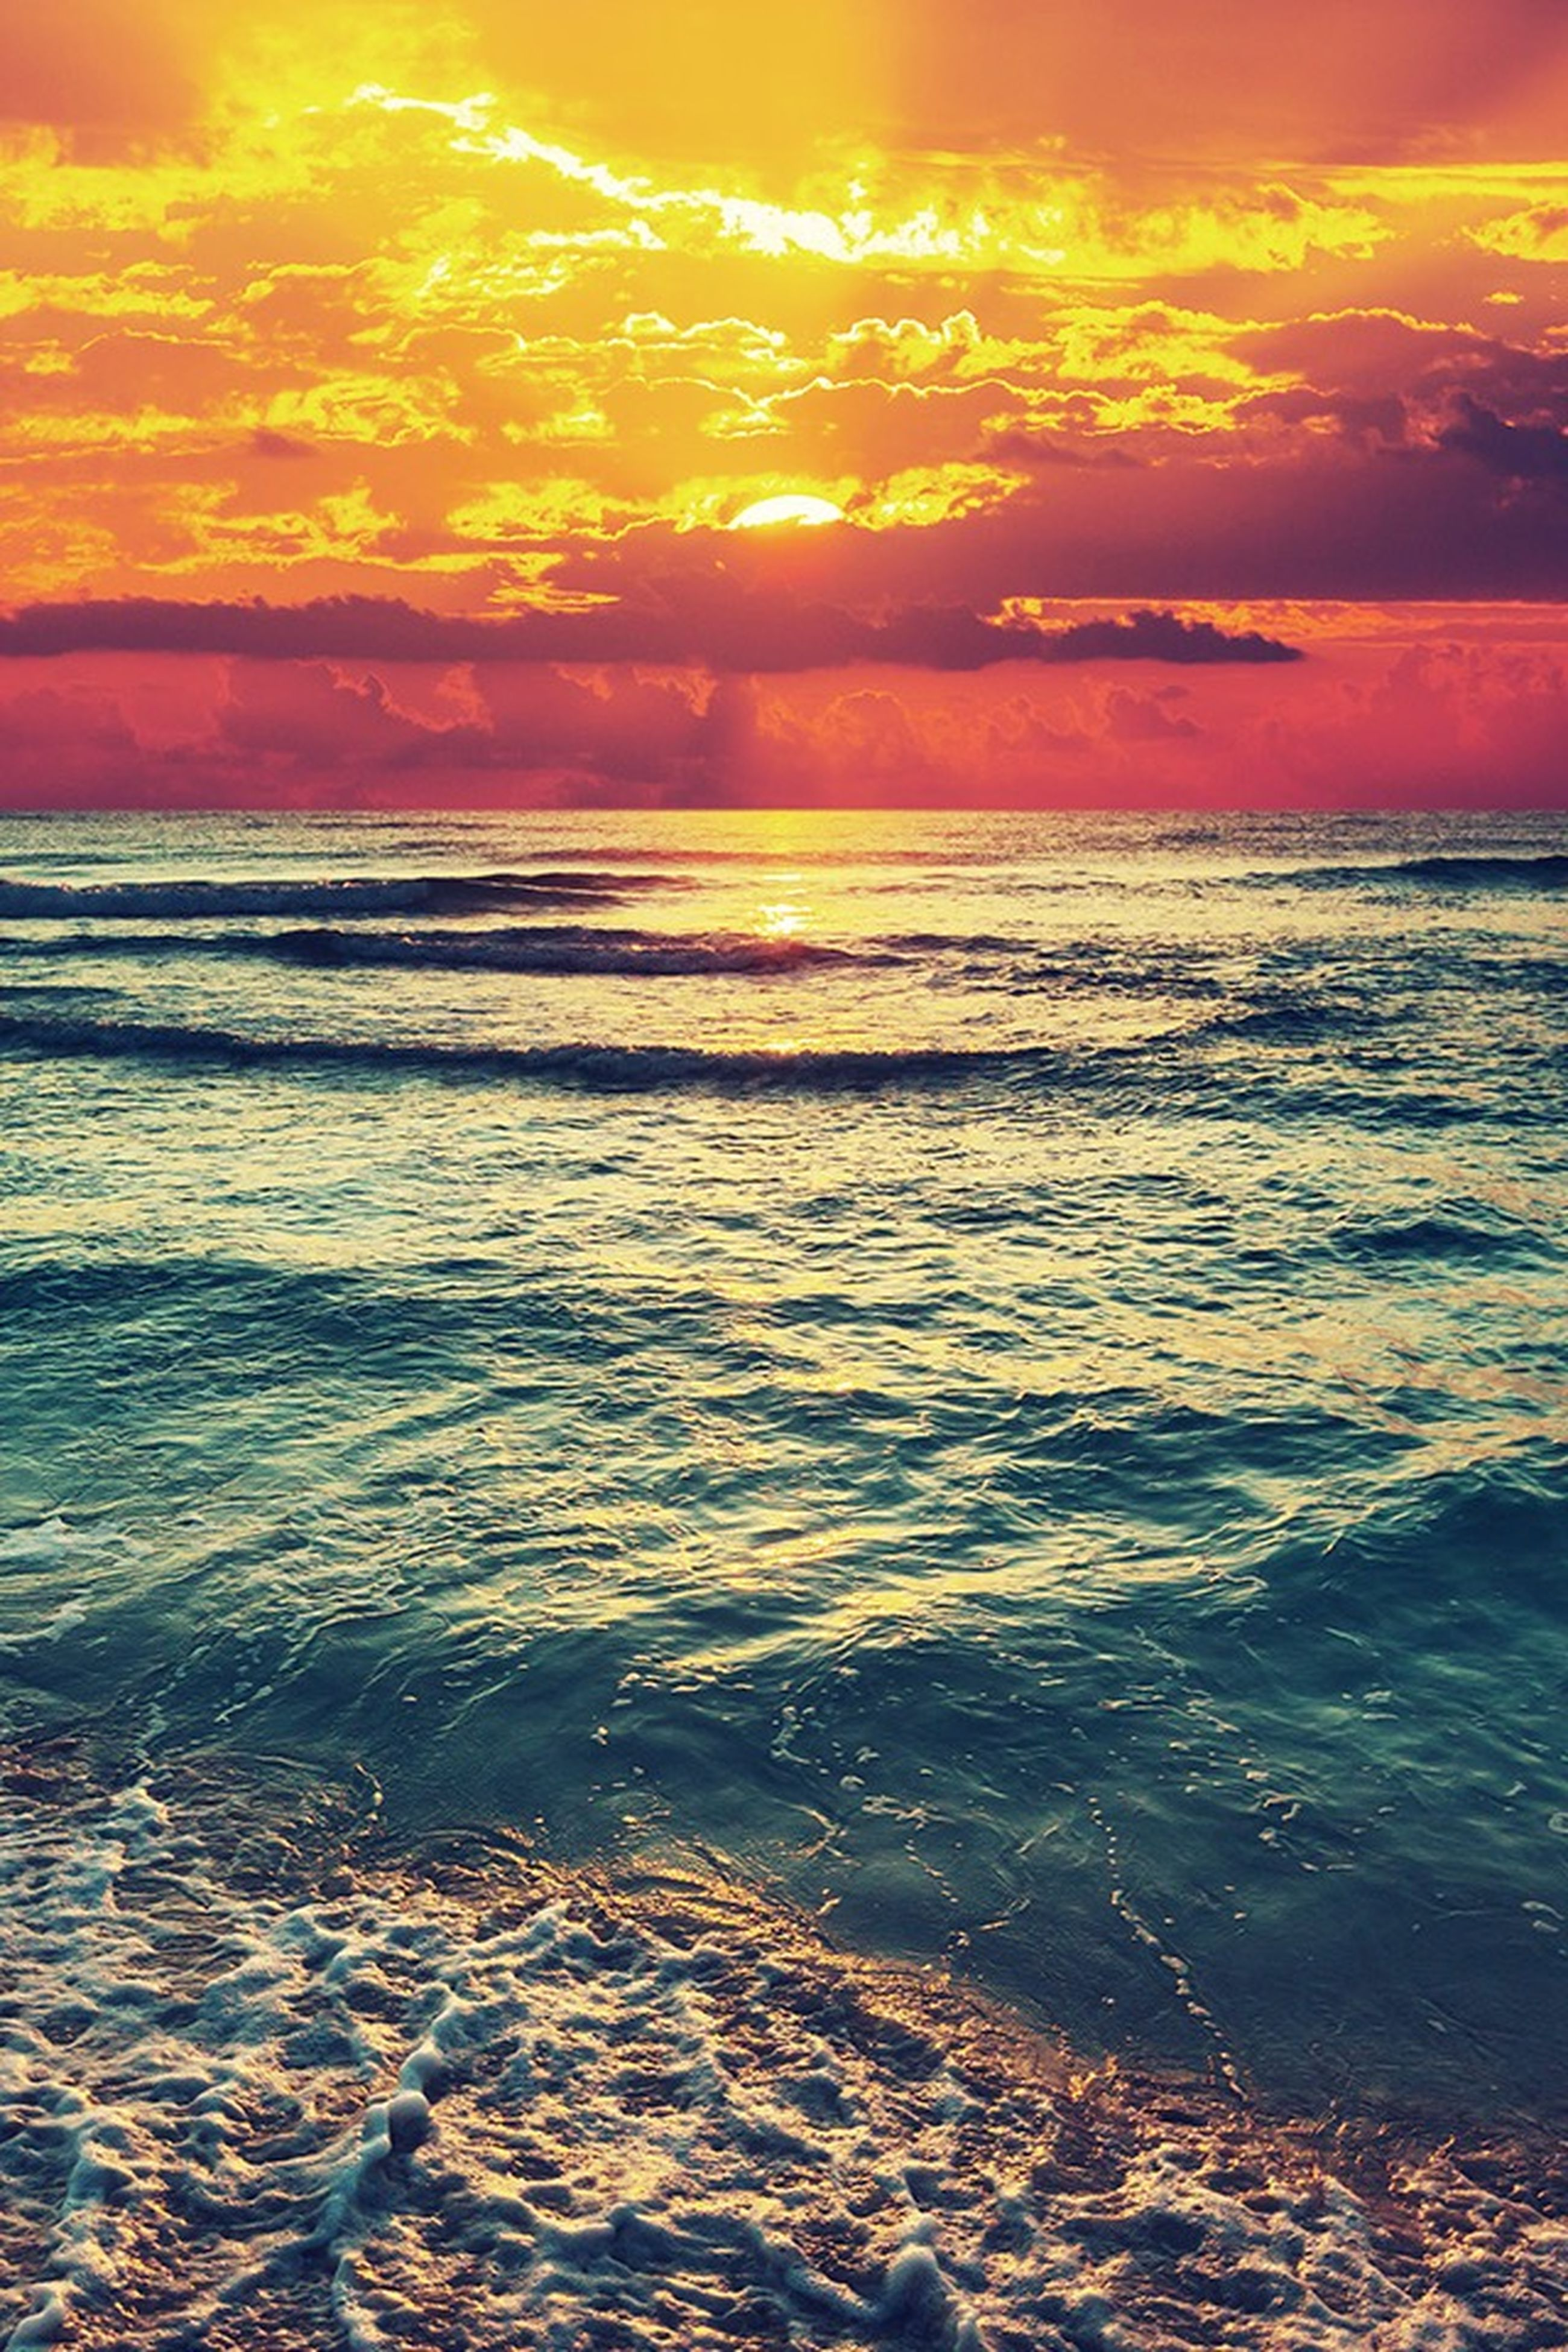 sunset, sea, water, horizon over water, scenics, beauty in nature, sky, tranquil scene, orange color, tranquility, beach, idyllic, cloud - sky, nature, shore, wave, sun, dramatic sky, reflection, seascape